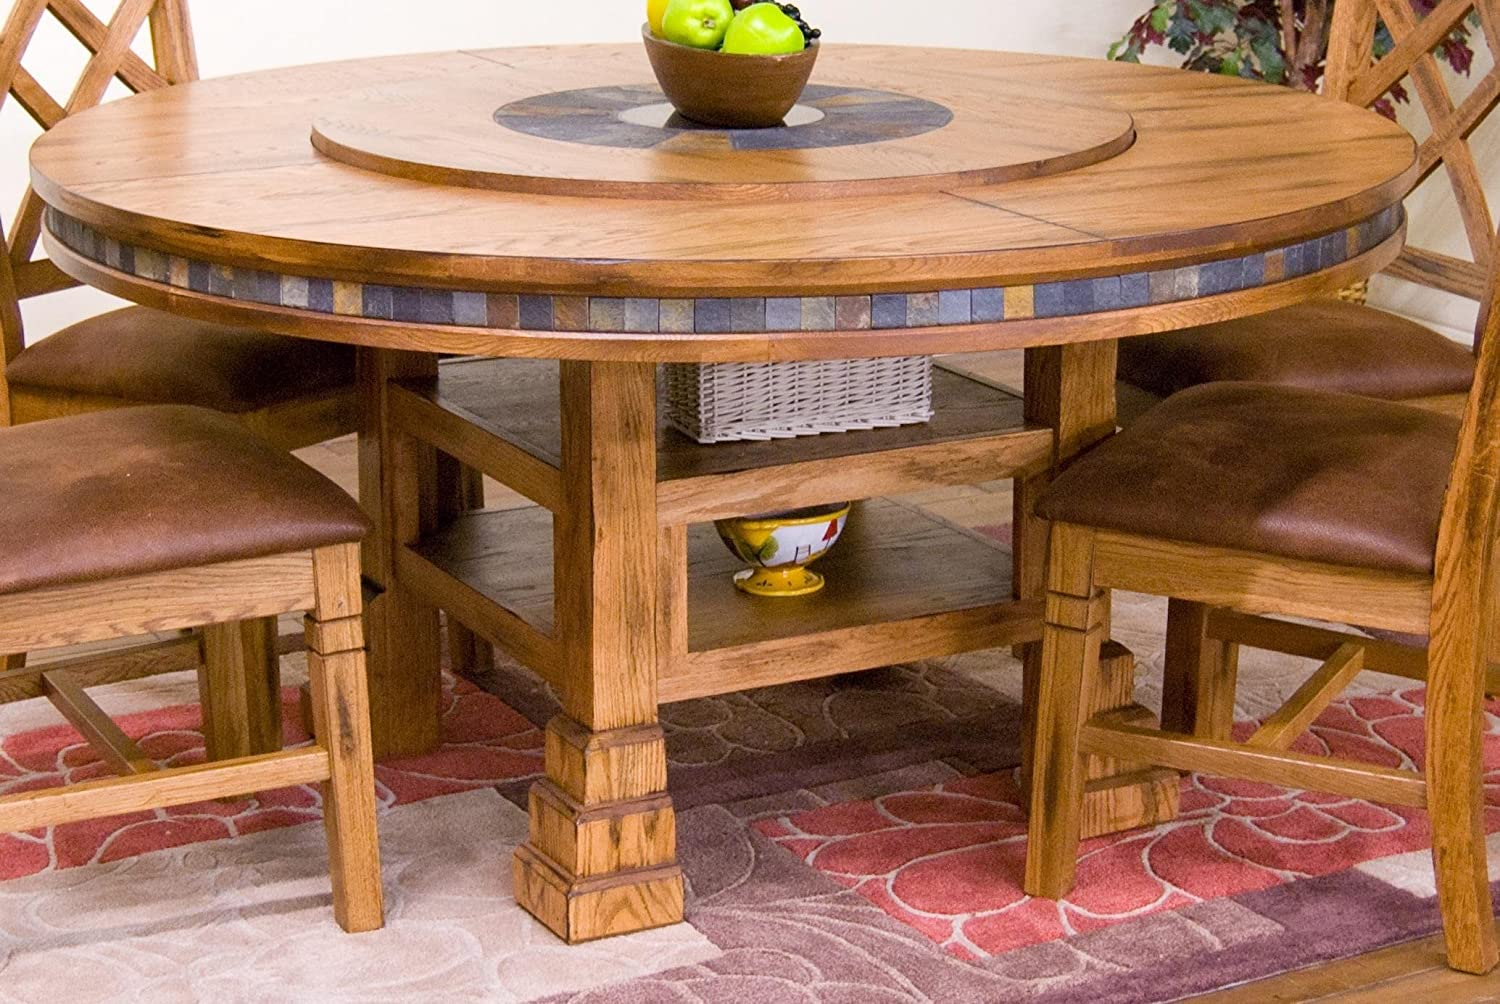 Art van coffee tables art van dining tables images for 120 inch long dining room table